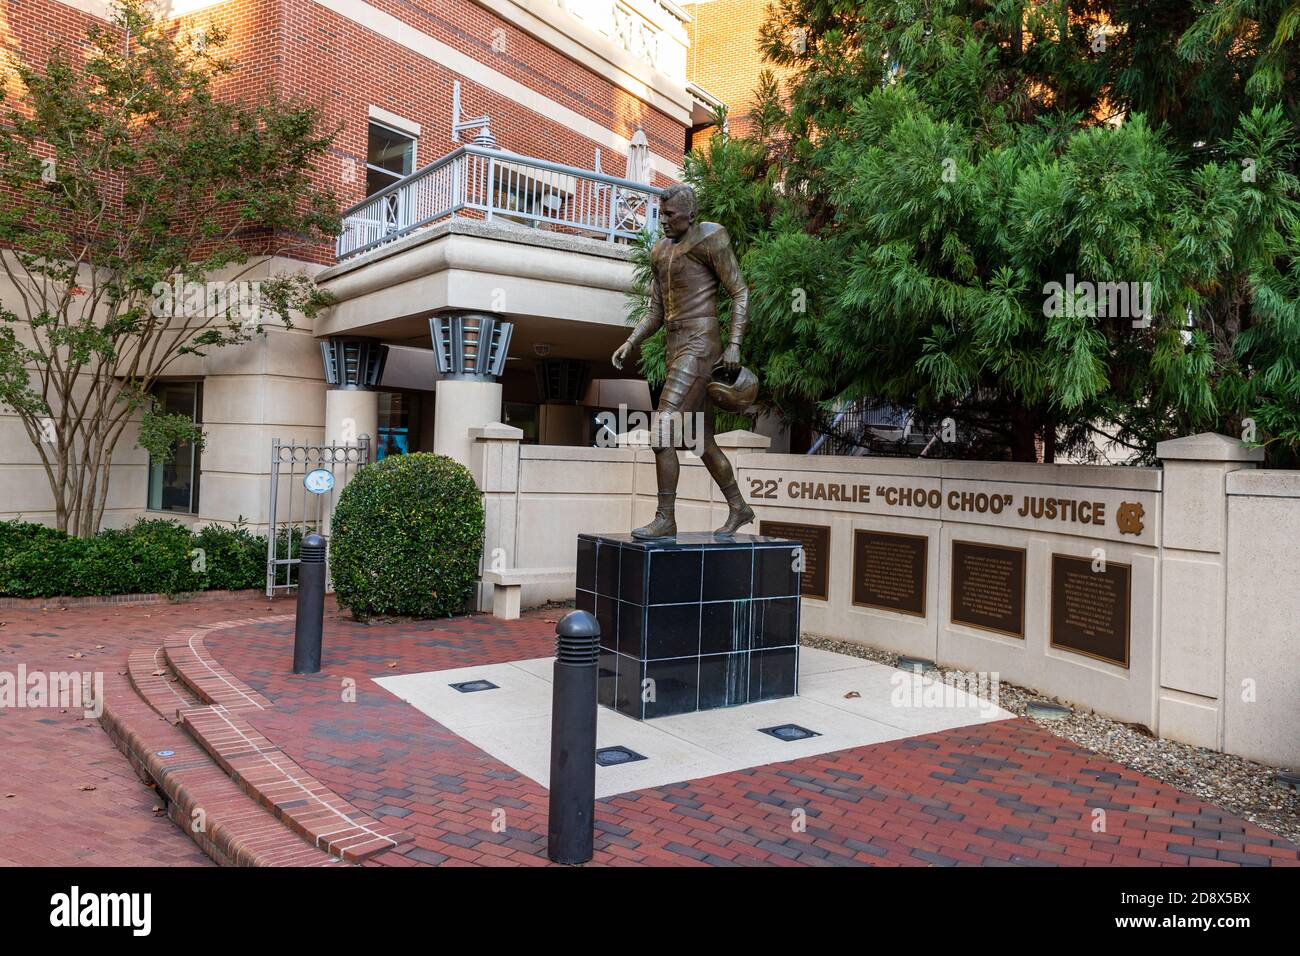 Chapel Hill, NC / USA - October 23, 2020: Charlie Choo Choo Justice Statue on the campus of the University of North Carolina Stock Photo